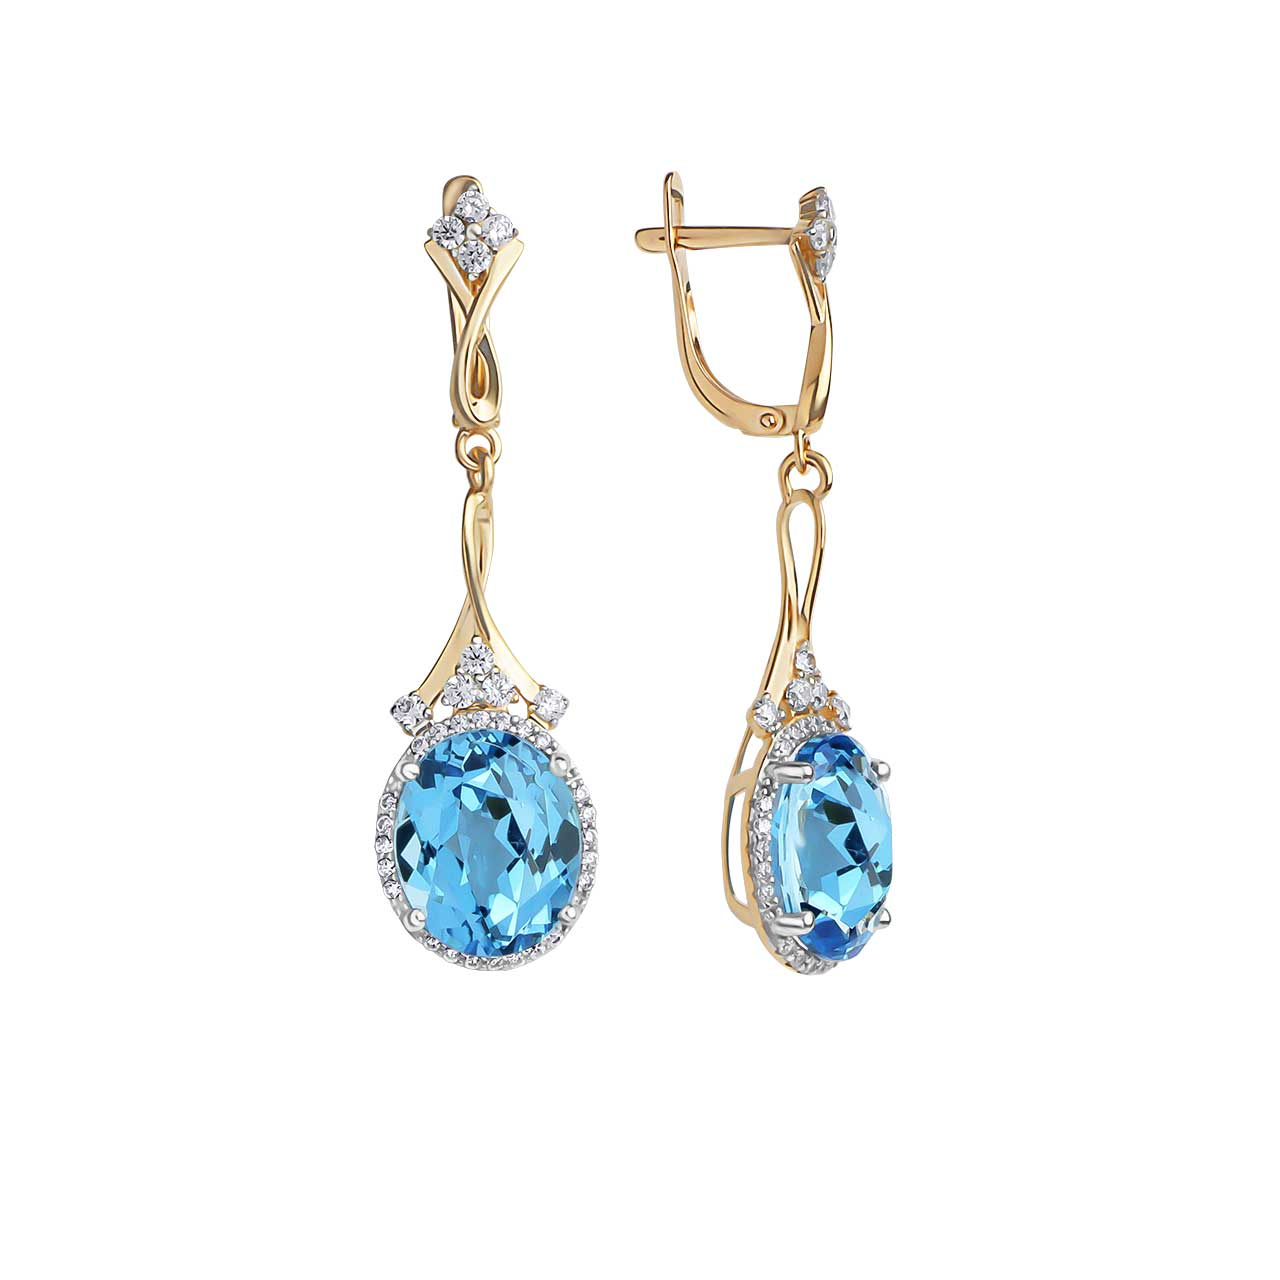 Blue Topaz with CZ Accents Dangle Earrings